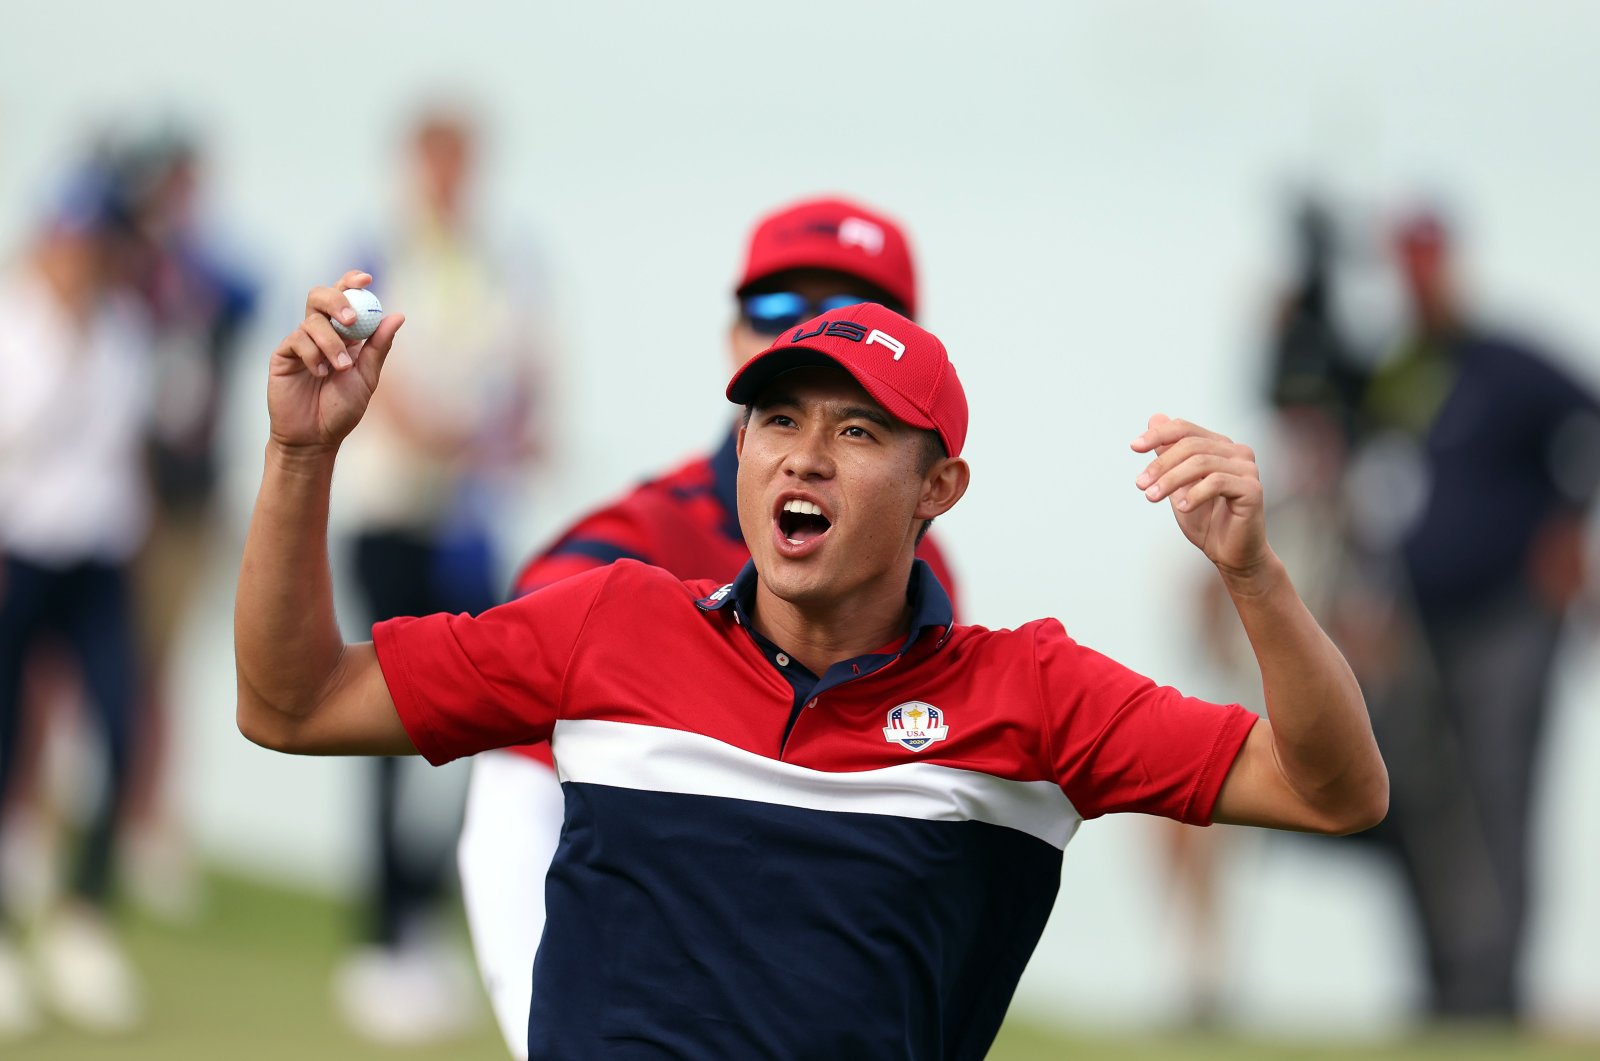 United State's Collin Morikawa celebrates on the 17th green after winning the hole to go 1up and guarantee the half point needed for the U.S. to win during Sunday Singles Matches of the 43rd Ryder Cup at Whistling Straits, in Kohler, Wisconsin, Sept. 26, 2021.